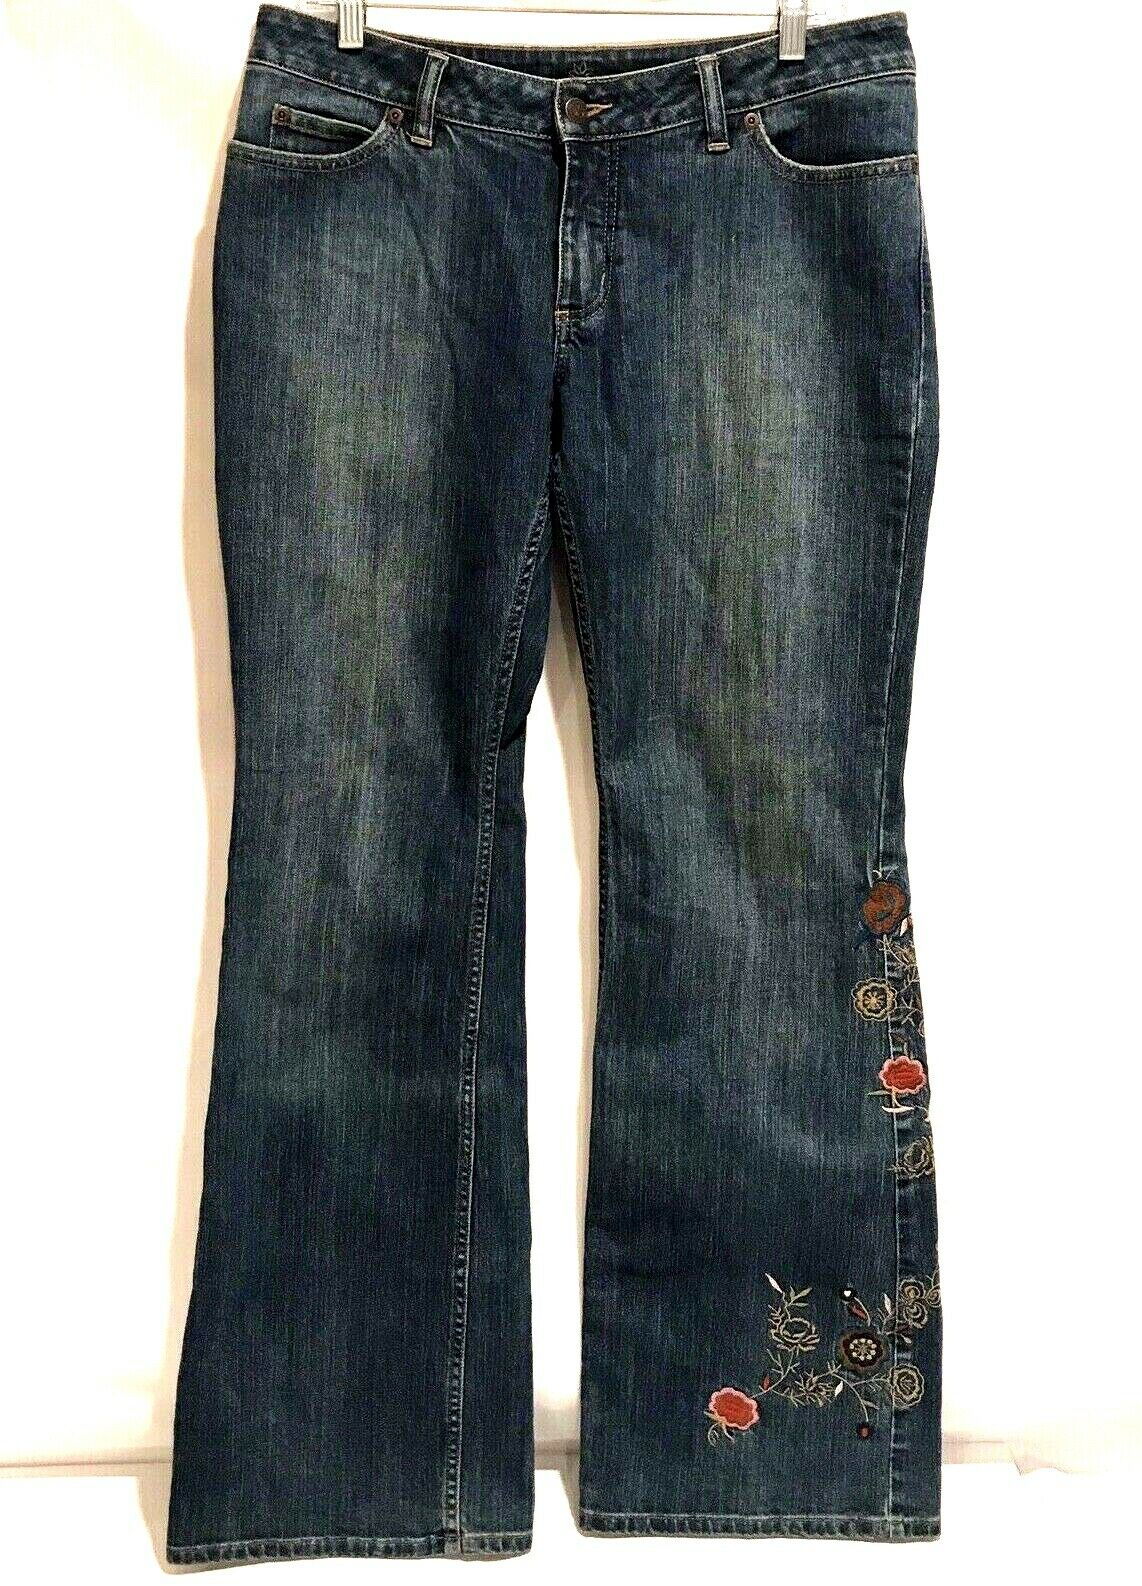 Caslon Denim Embroiderot Floral Flare Jeans 8 32x34 Stretch Boho Medium Low Rise